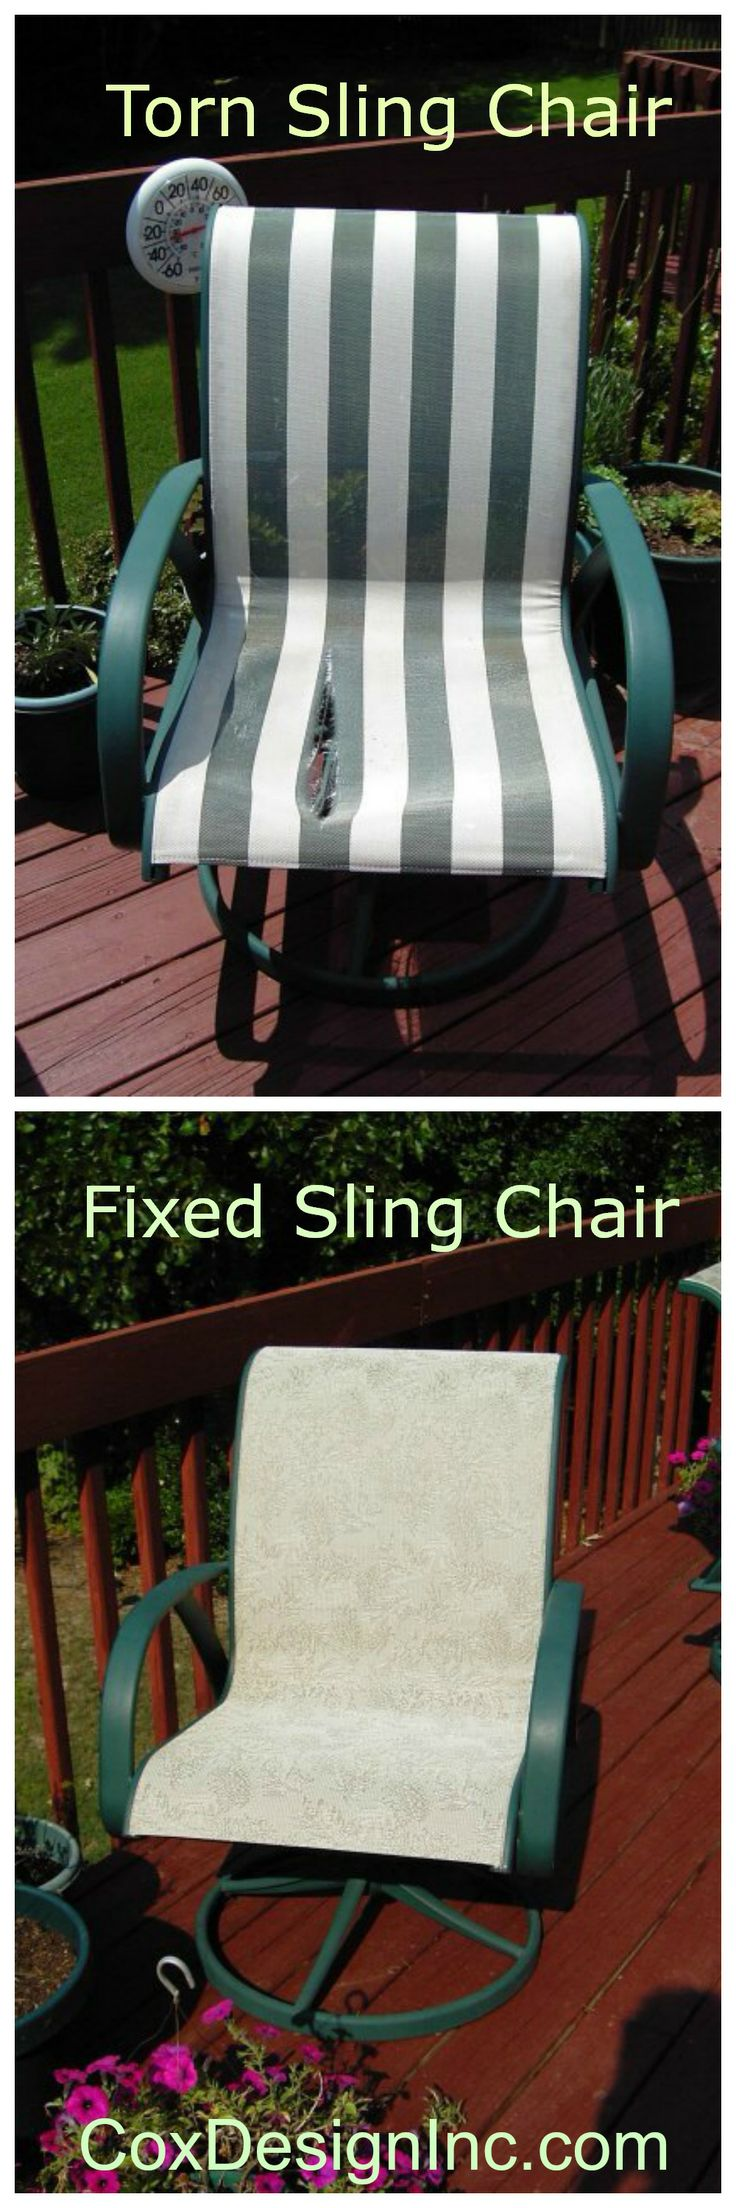 16 Best Weaving Lawn Chairs Images On Pinterest Lawn